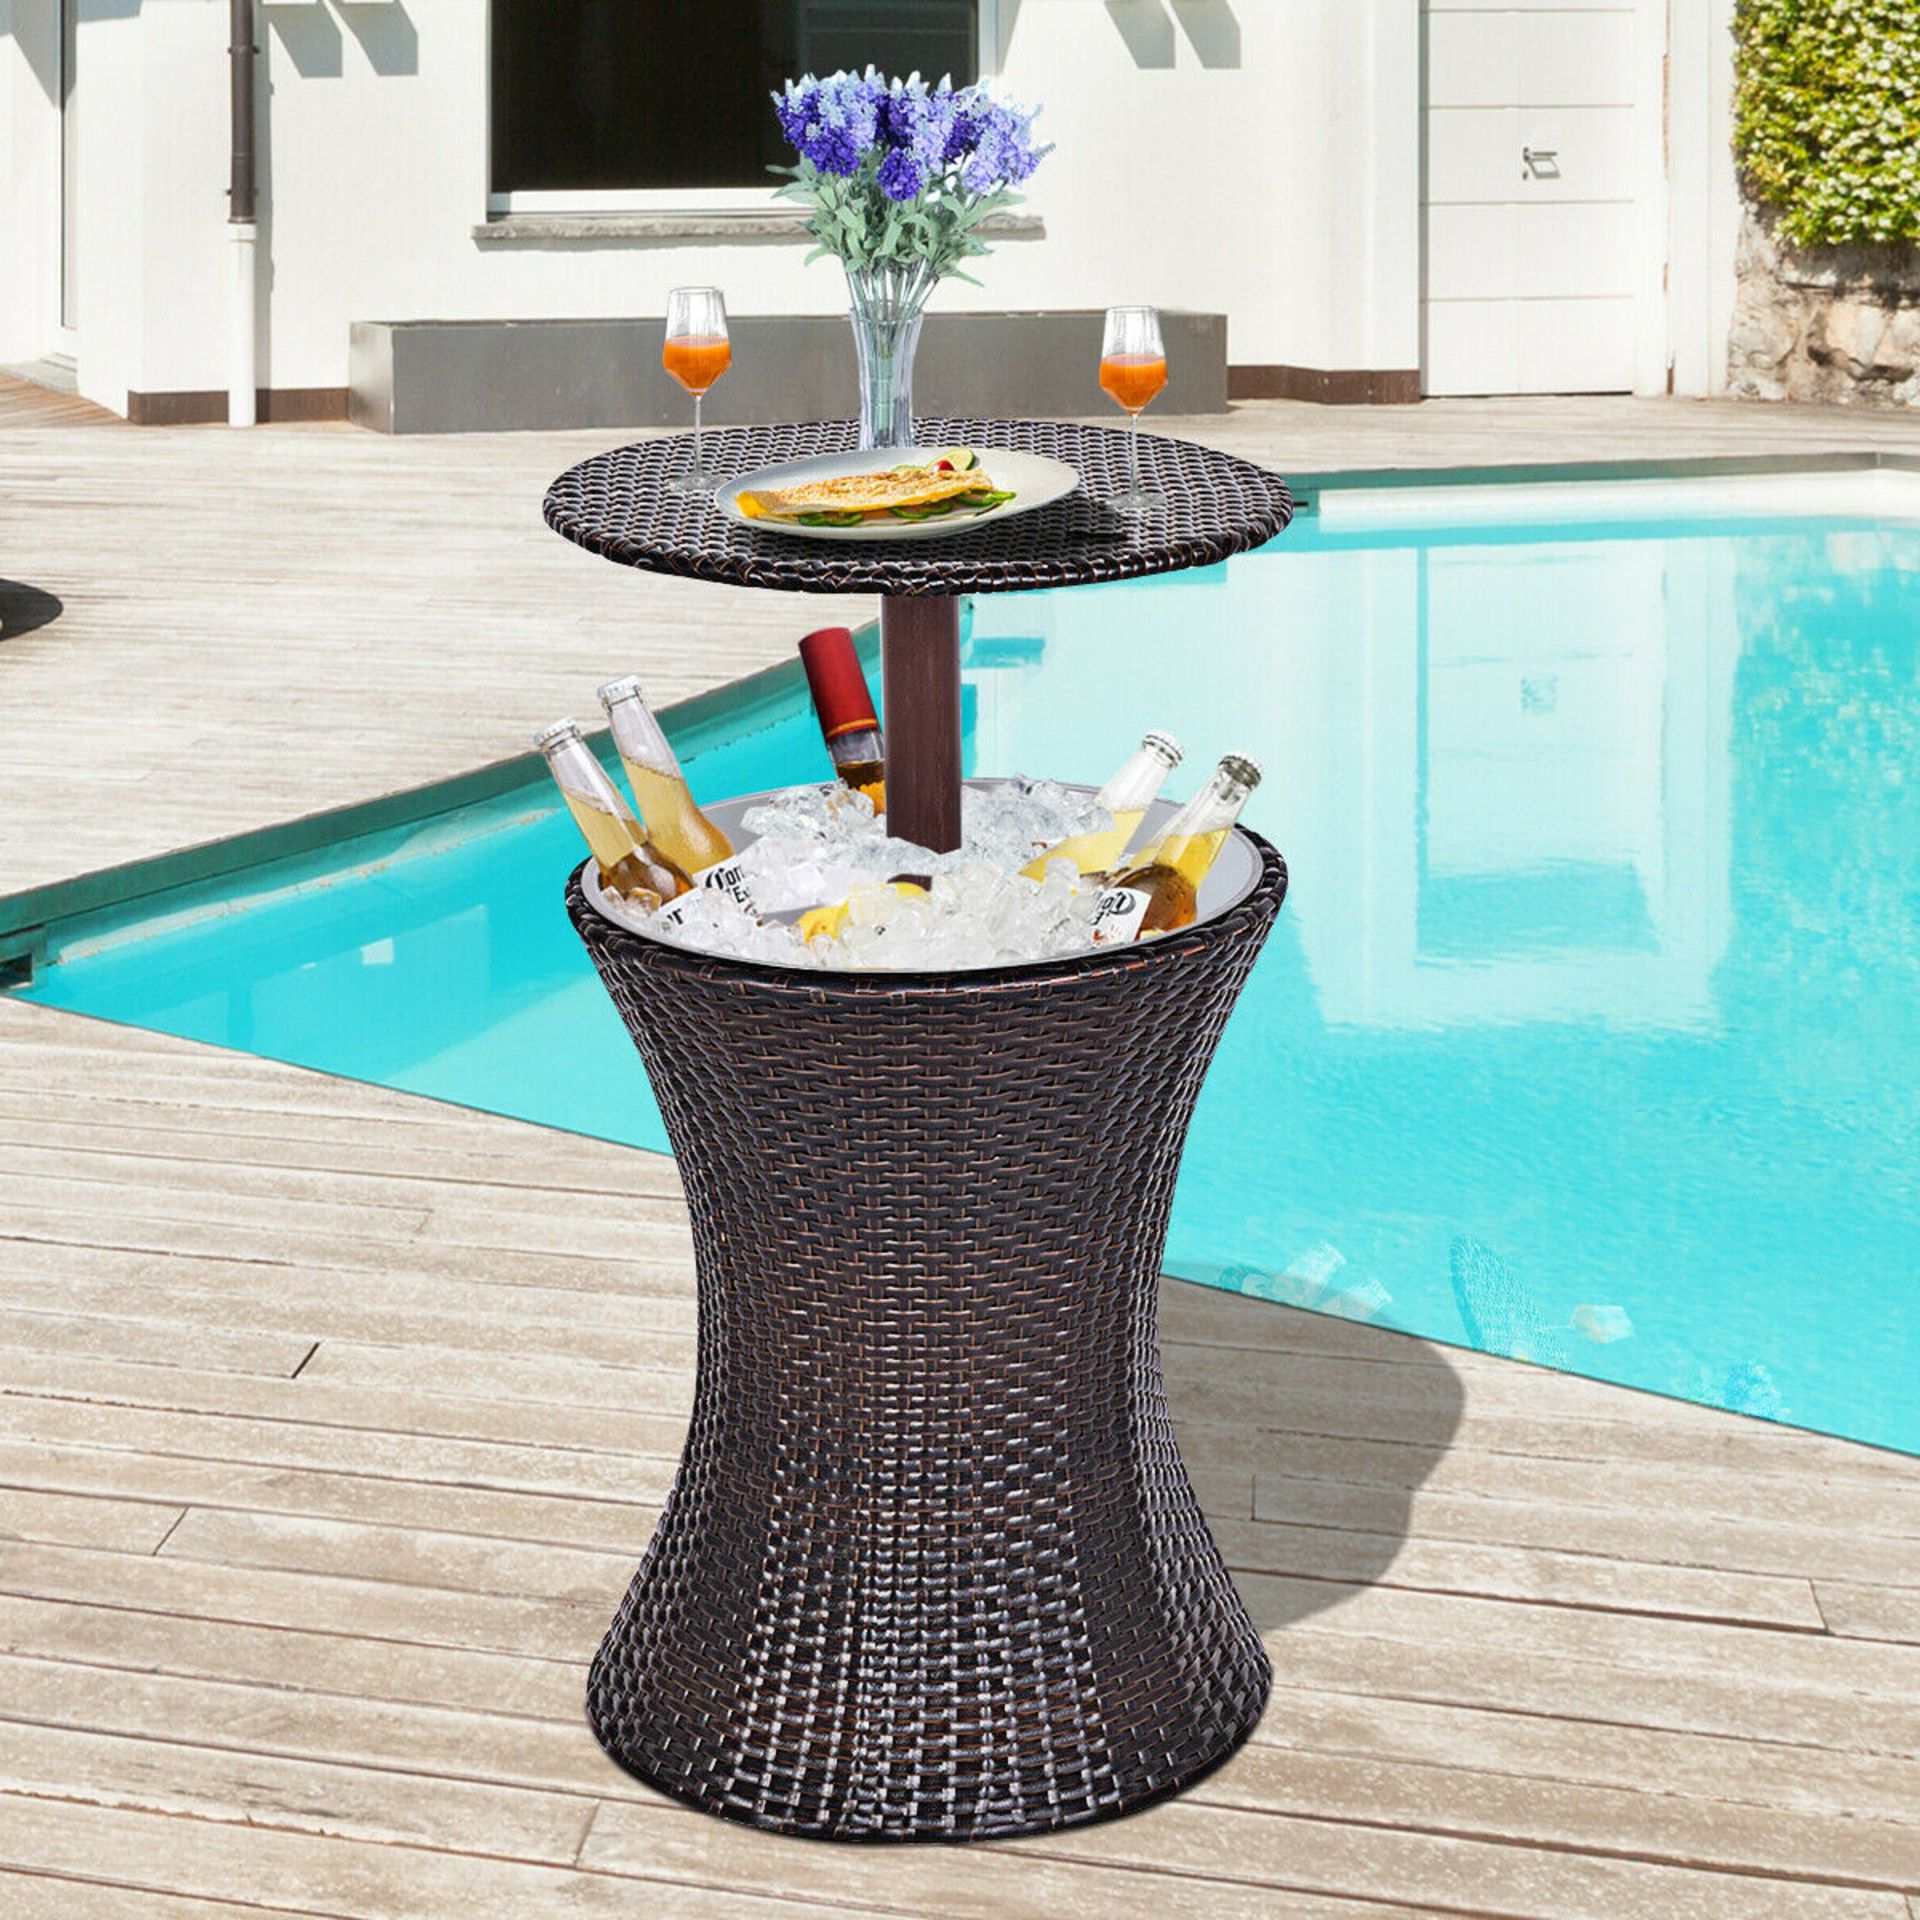 + VAT Brand New Chelsea Garden Company Rattan Bar Table With Metal Ice Cooler - Finished In - Image 3 of 3